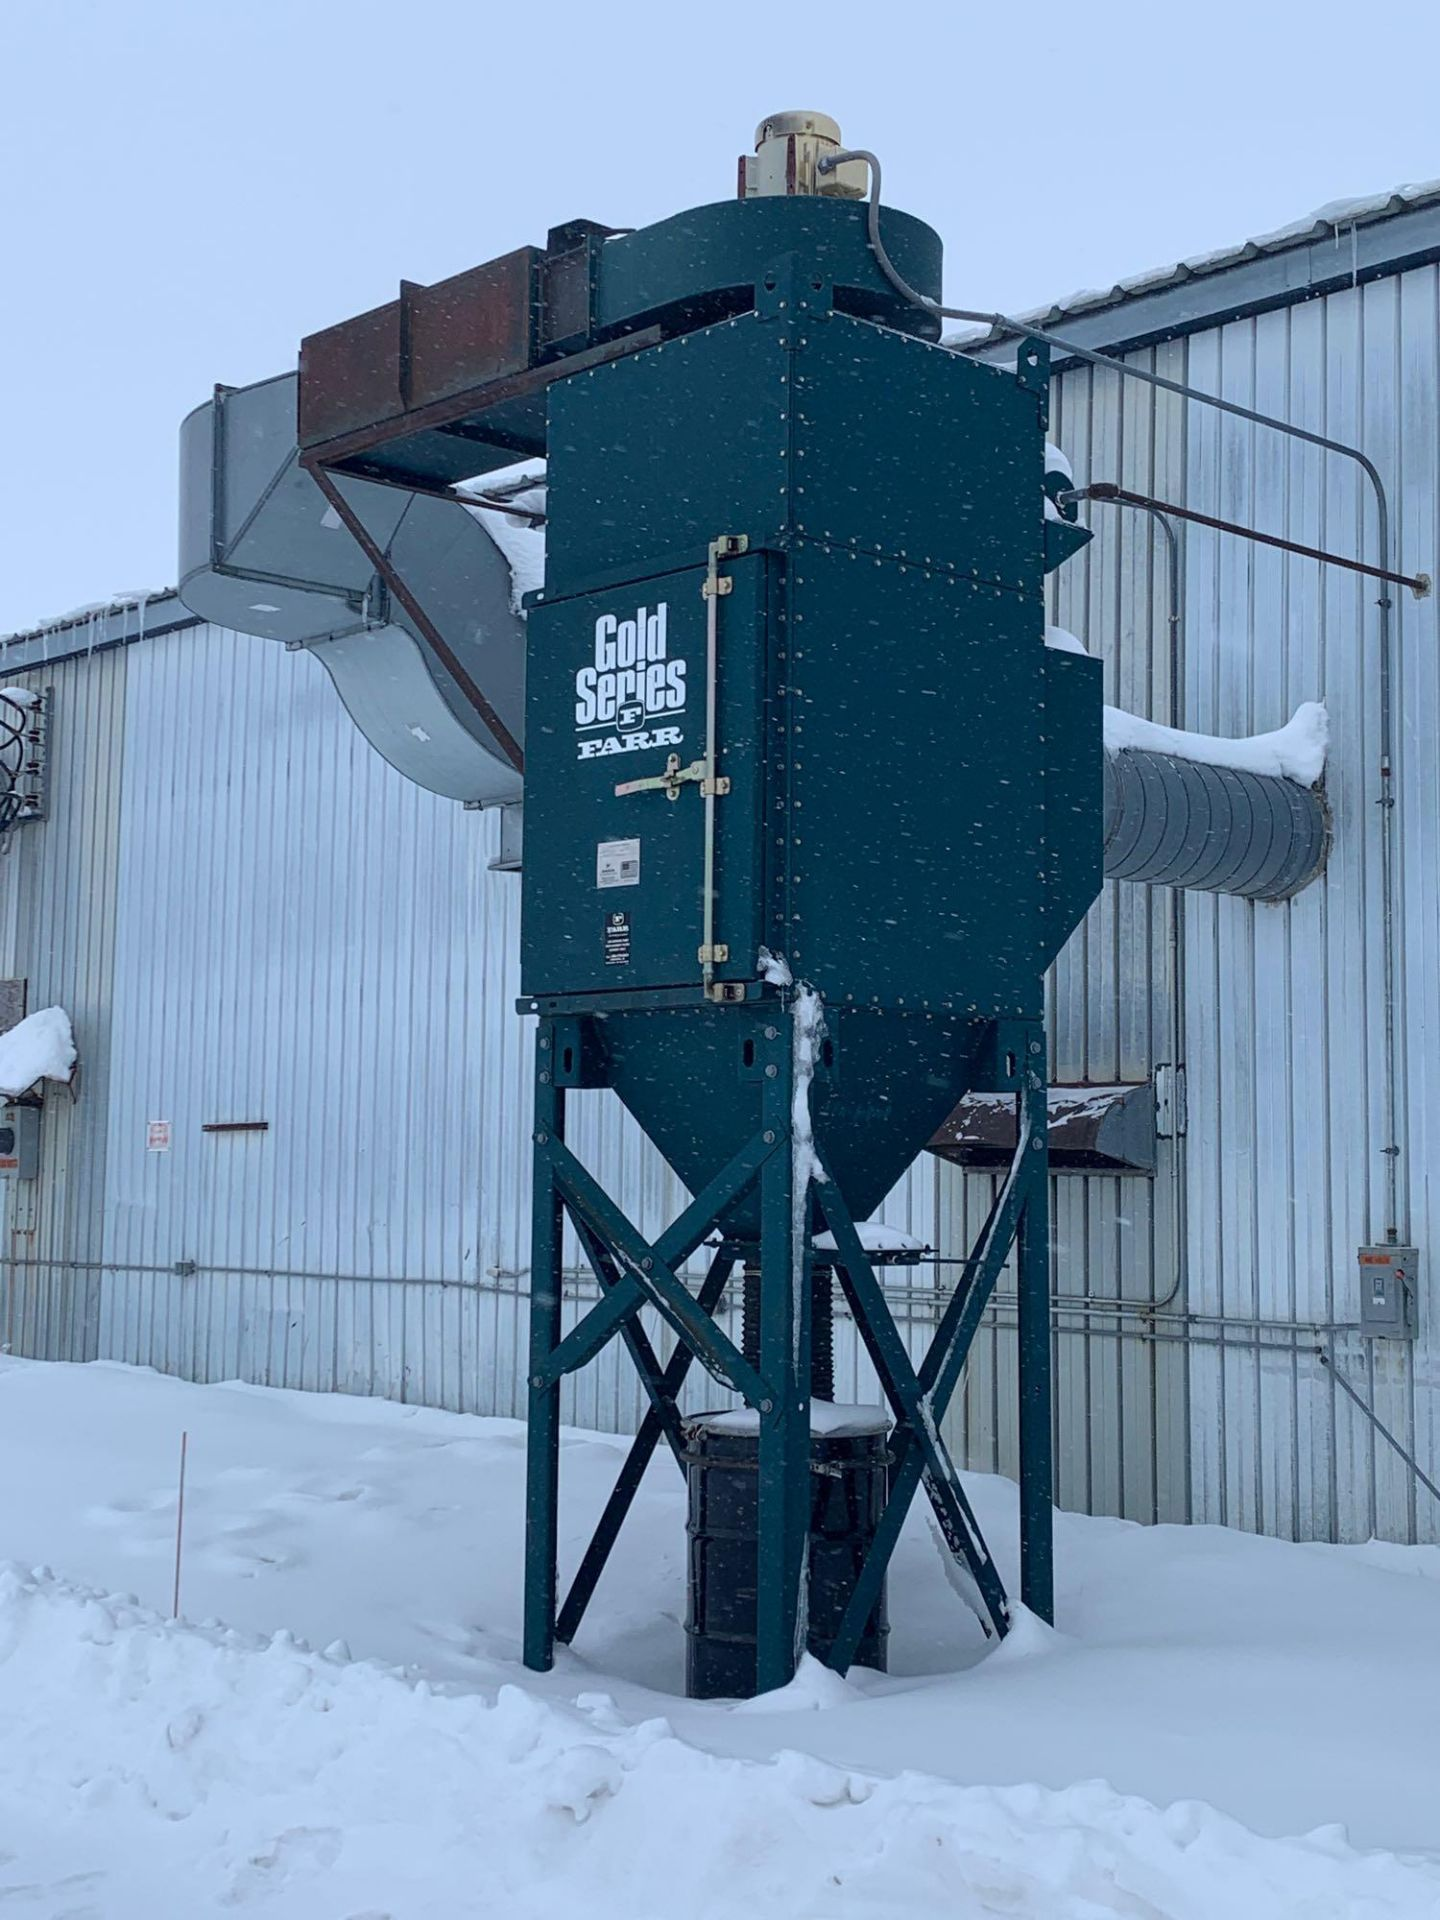 Farr Dust Collector Model GS-4 Serial Number: 836598 Part Number: 212834FAN